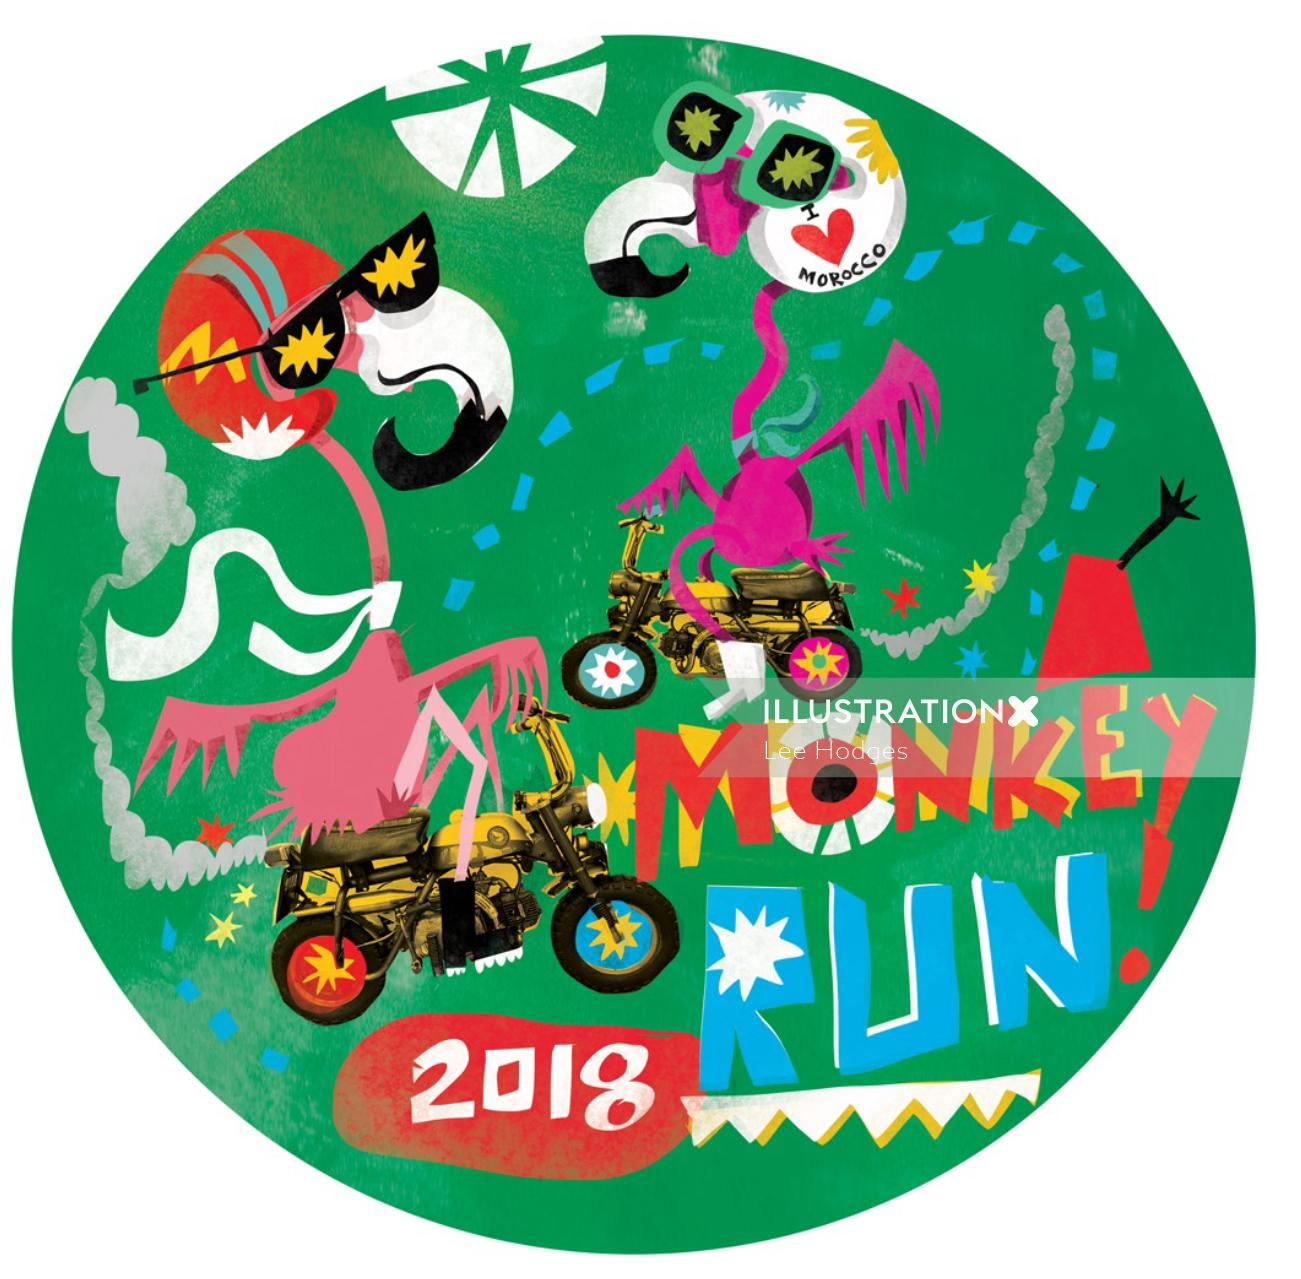 Character design of monkey run sticker